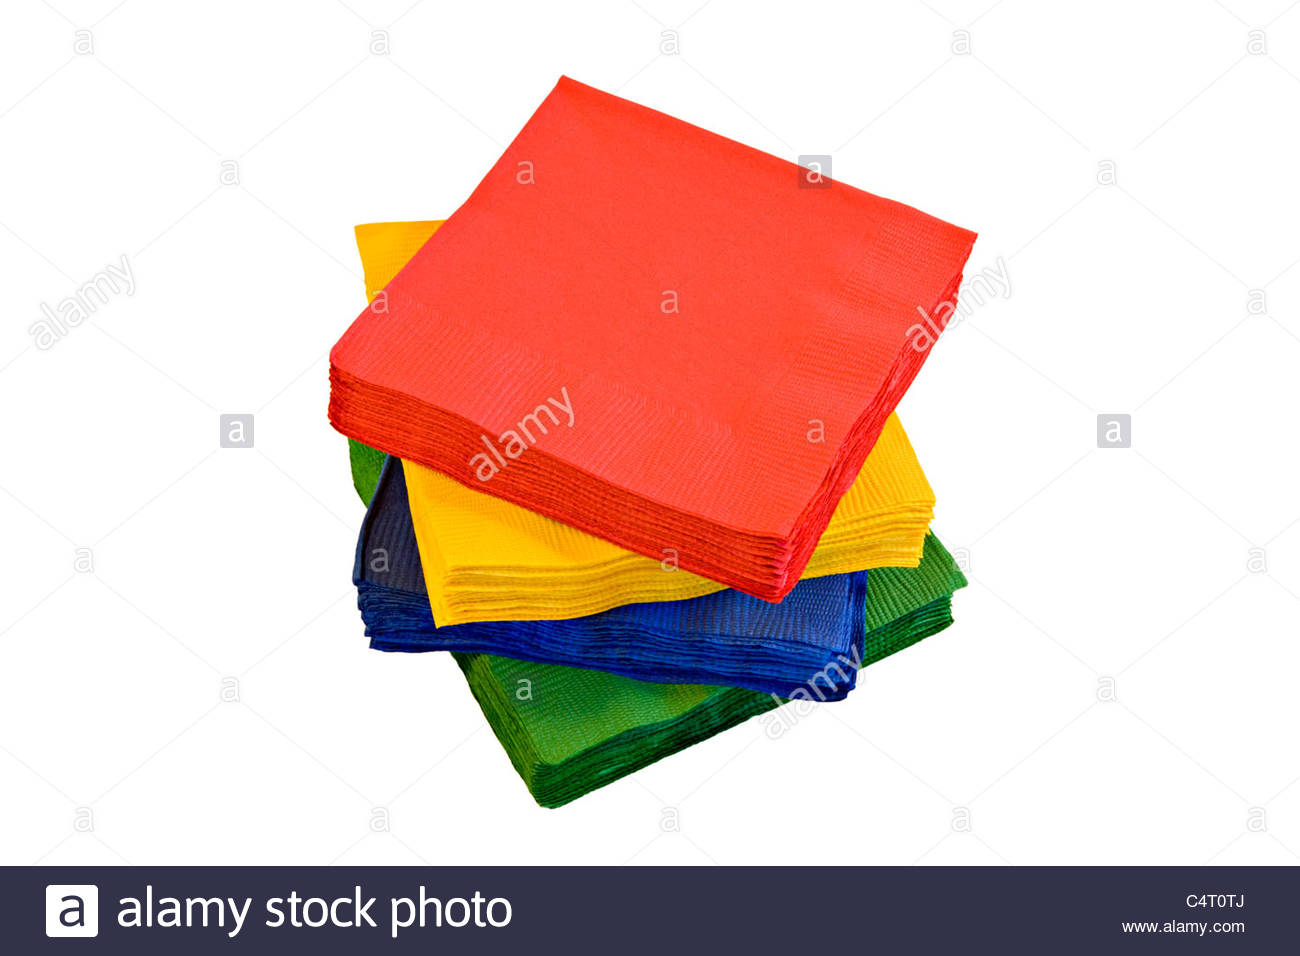 stack of different coloured Paper napkins on white